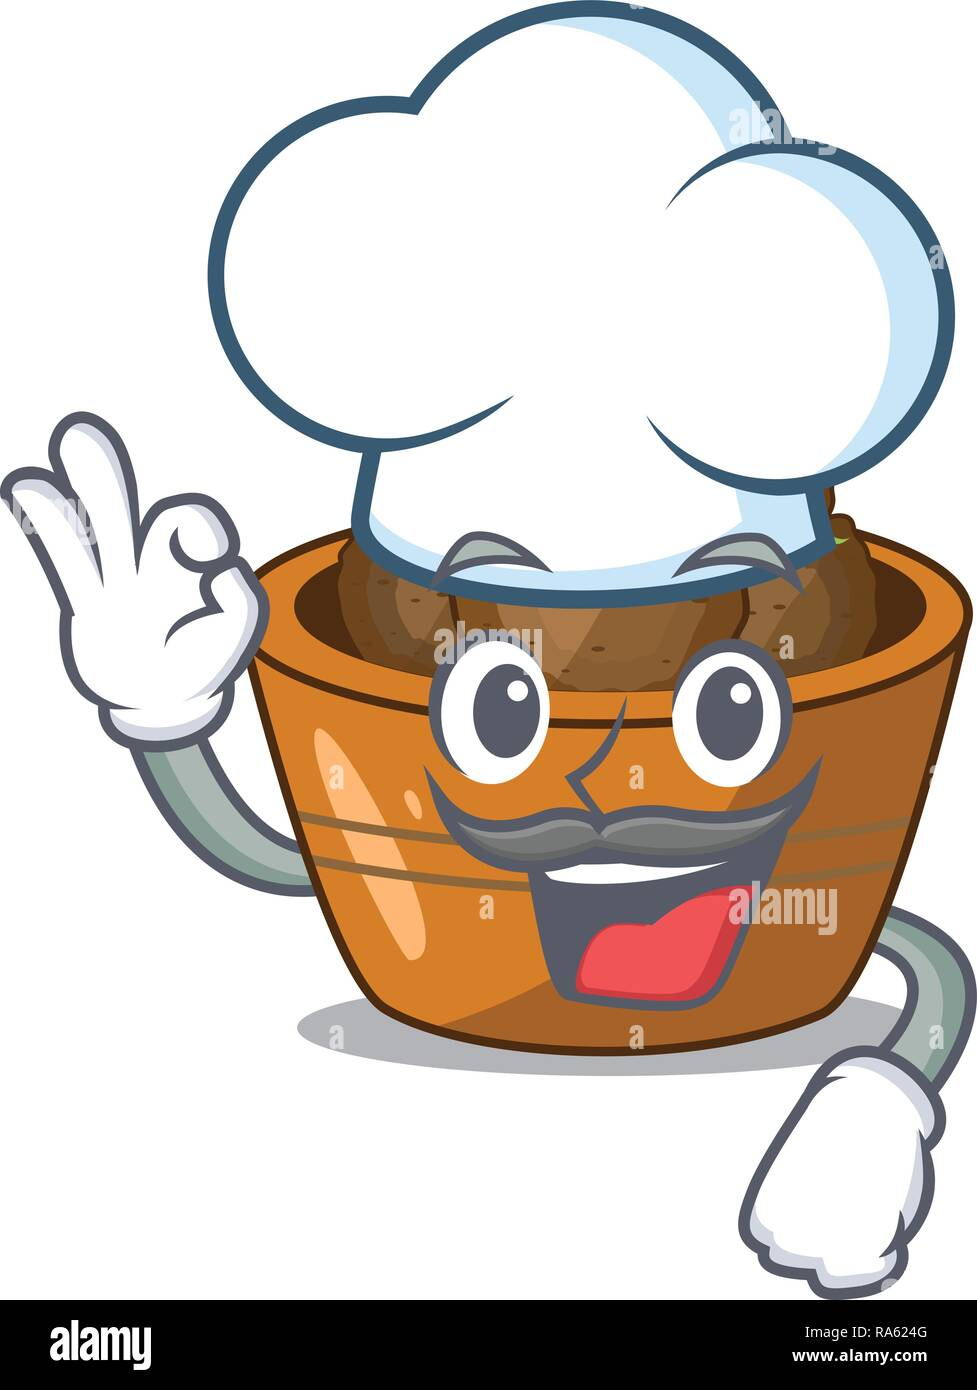 Chef gulab jamun on the character table - Stock Vector